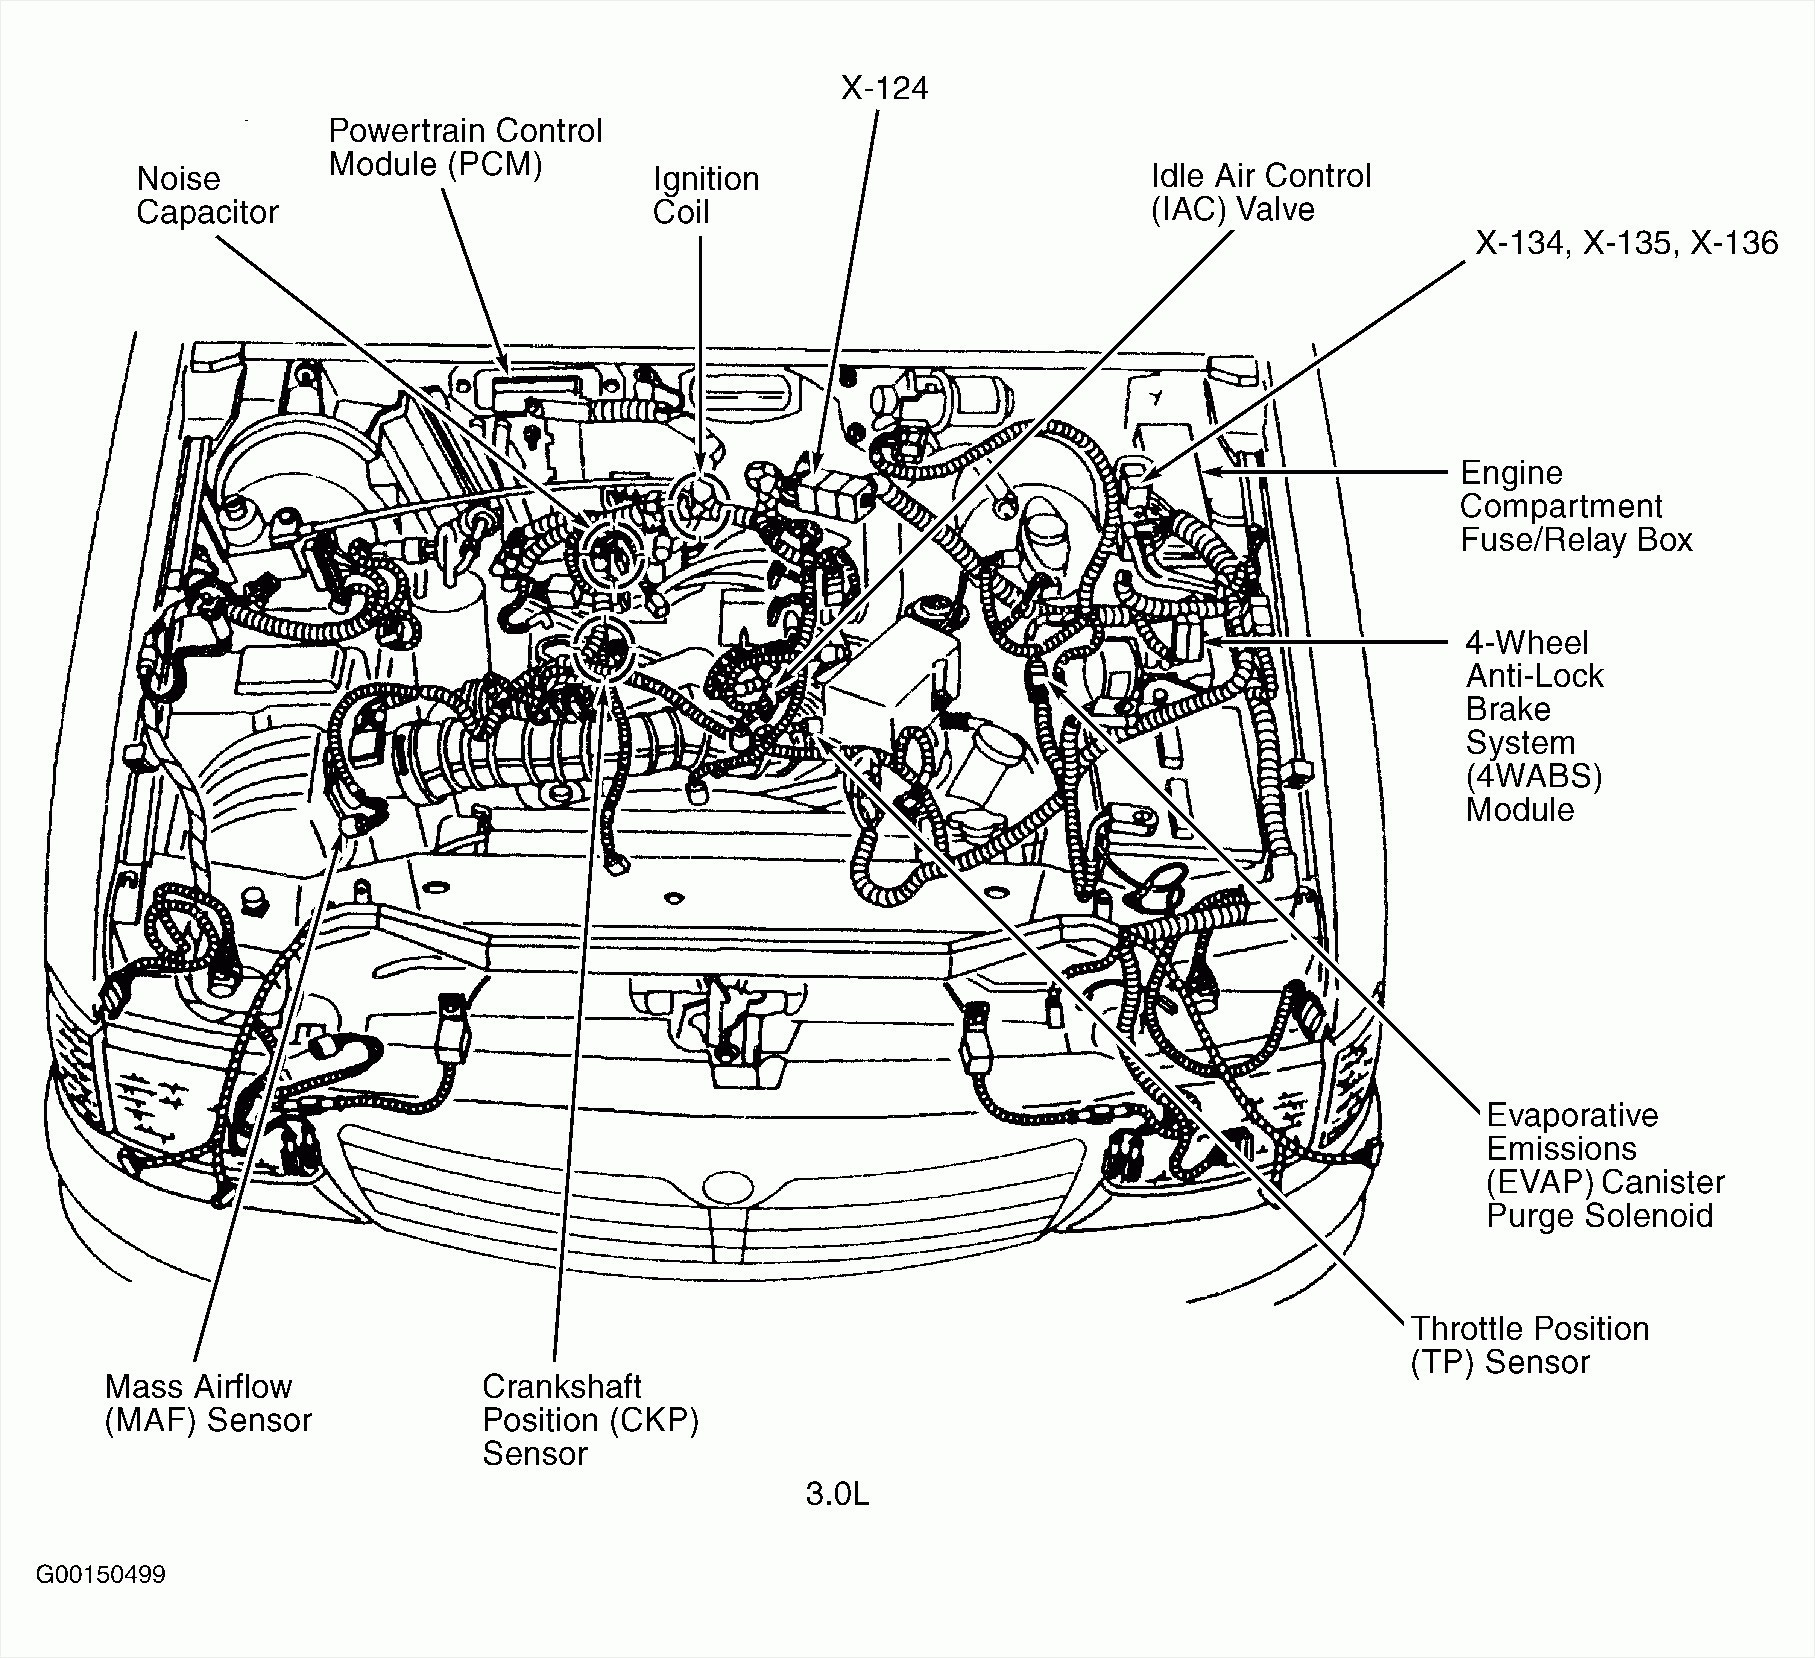 2000 montana 3400 engine diagram